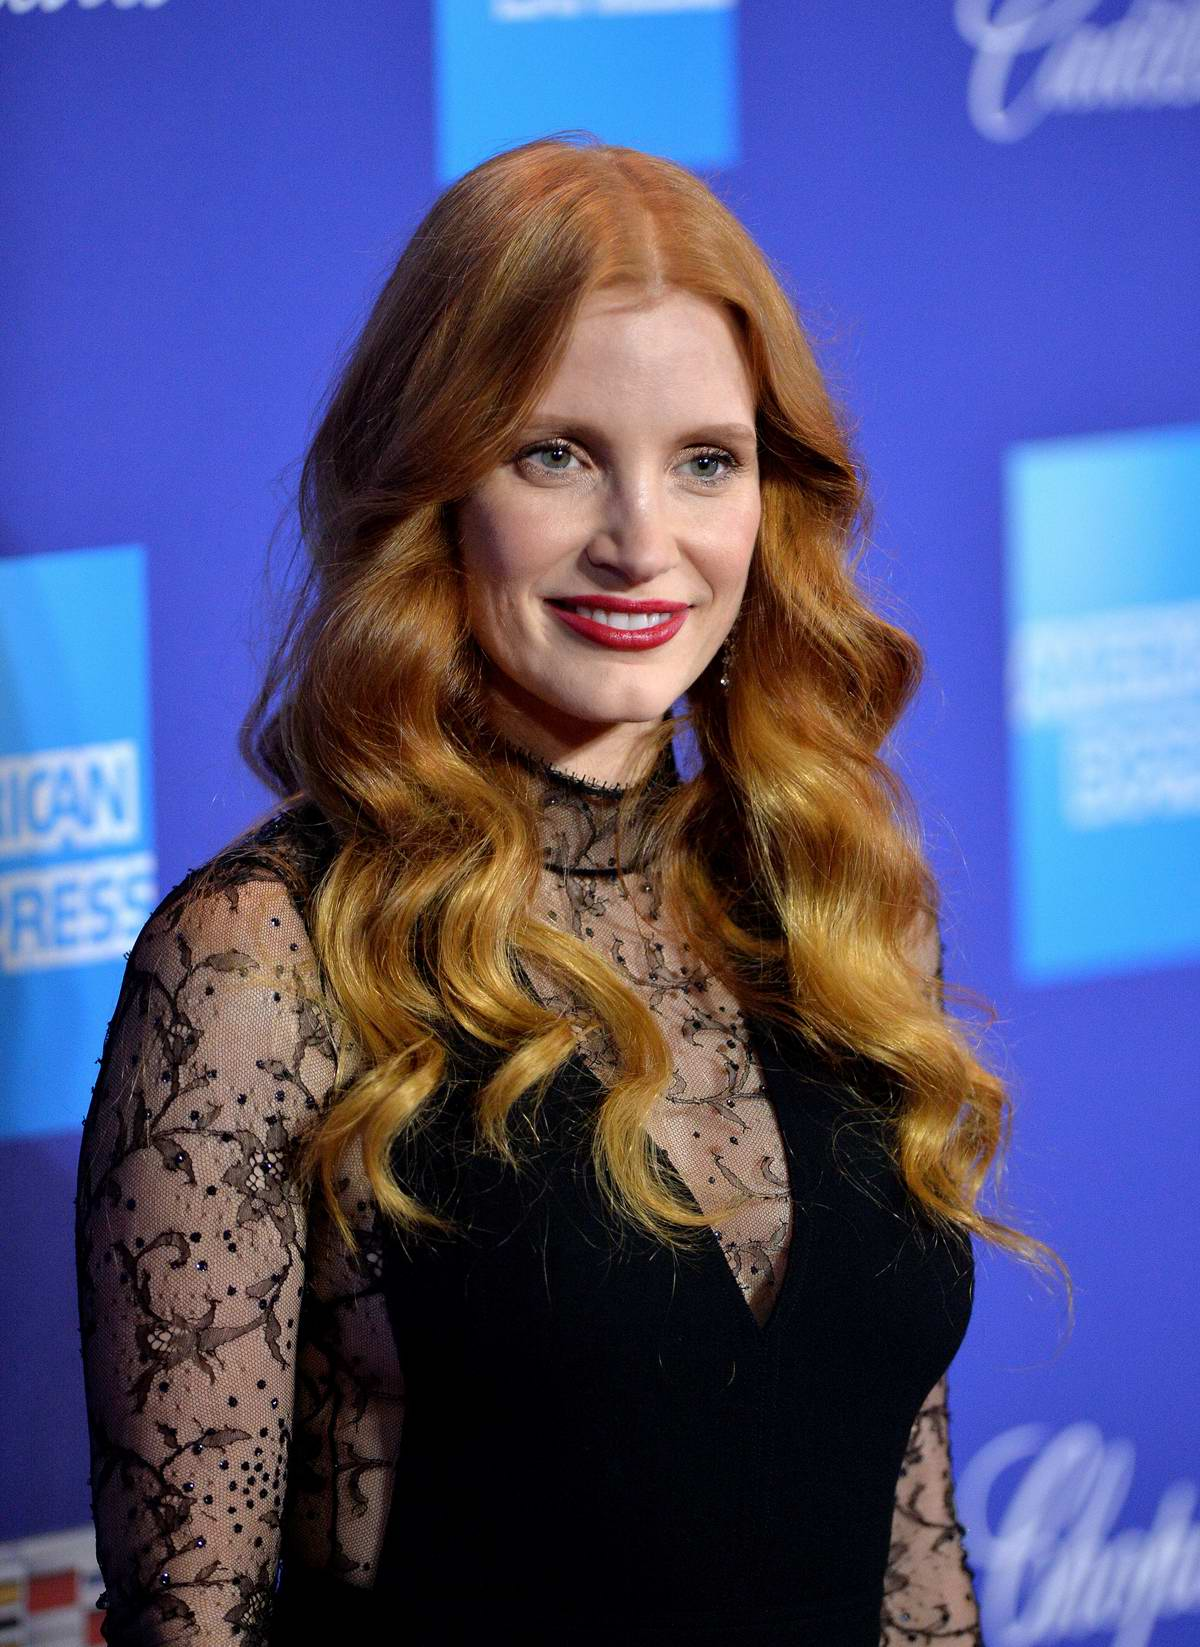 Jessica Chastain attends the 29th Palm Springs International Film Festival Awards Gala in Palm Springs, California